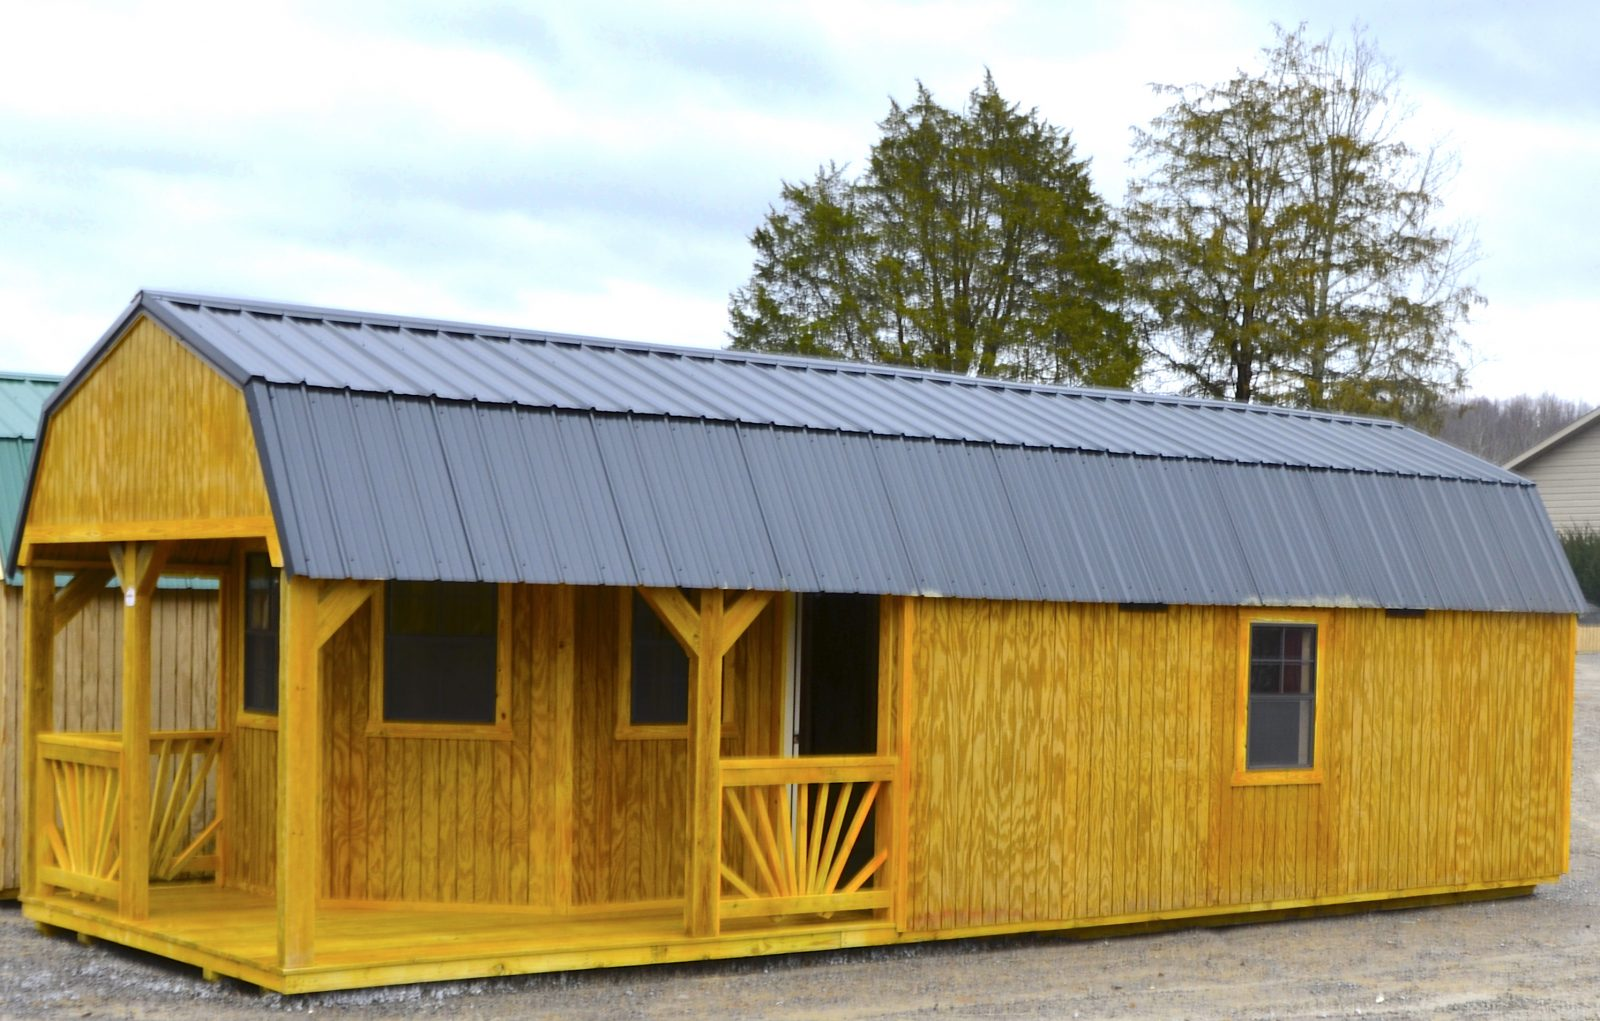 Deluxe Lofted Barn Cabin For Sale Move In To This